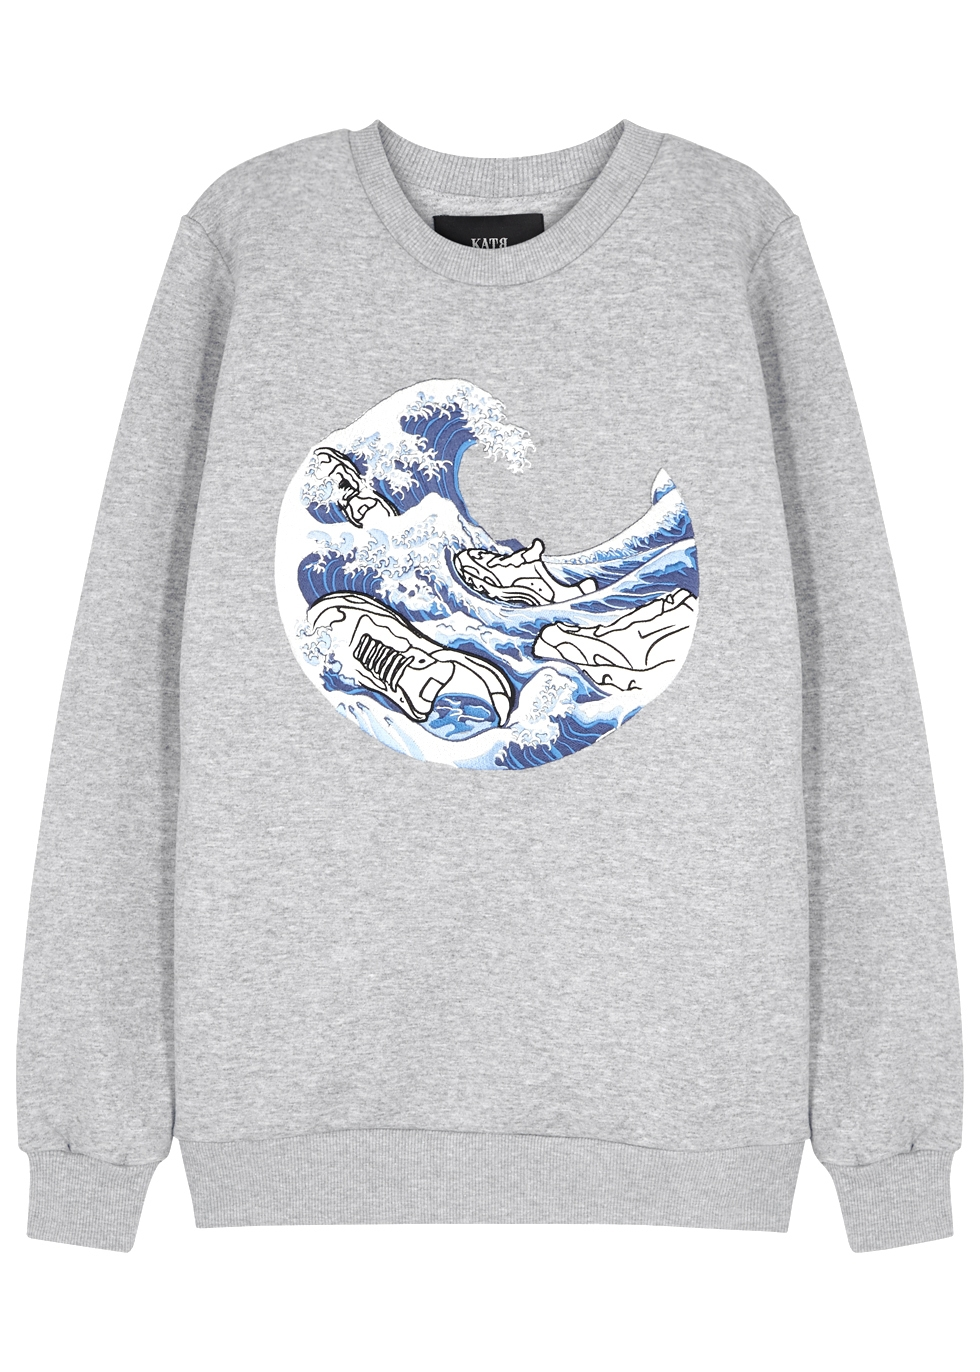 KATYA DOBRYAKOVA Sneakers Embroidered Cotton-Blend Sweatshirt in Grey